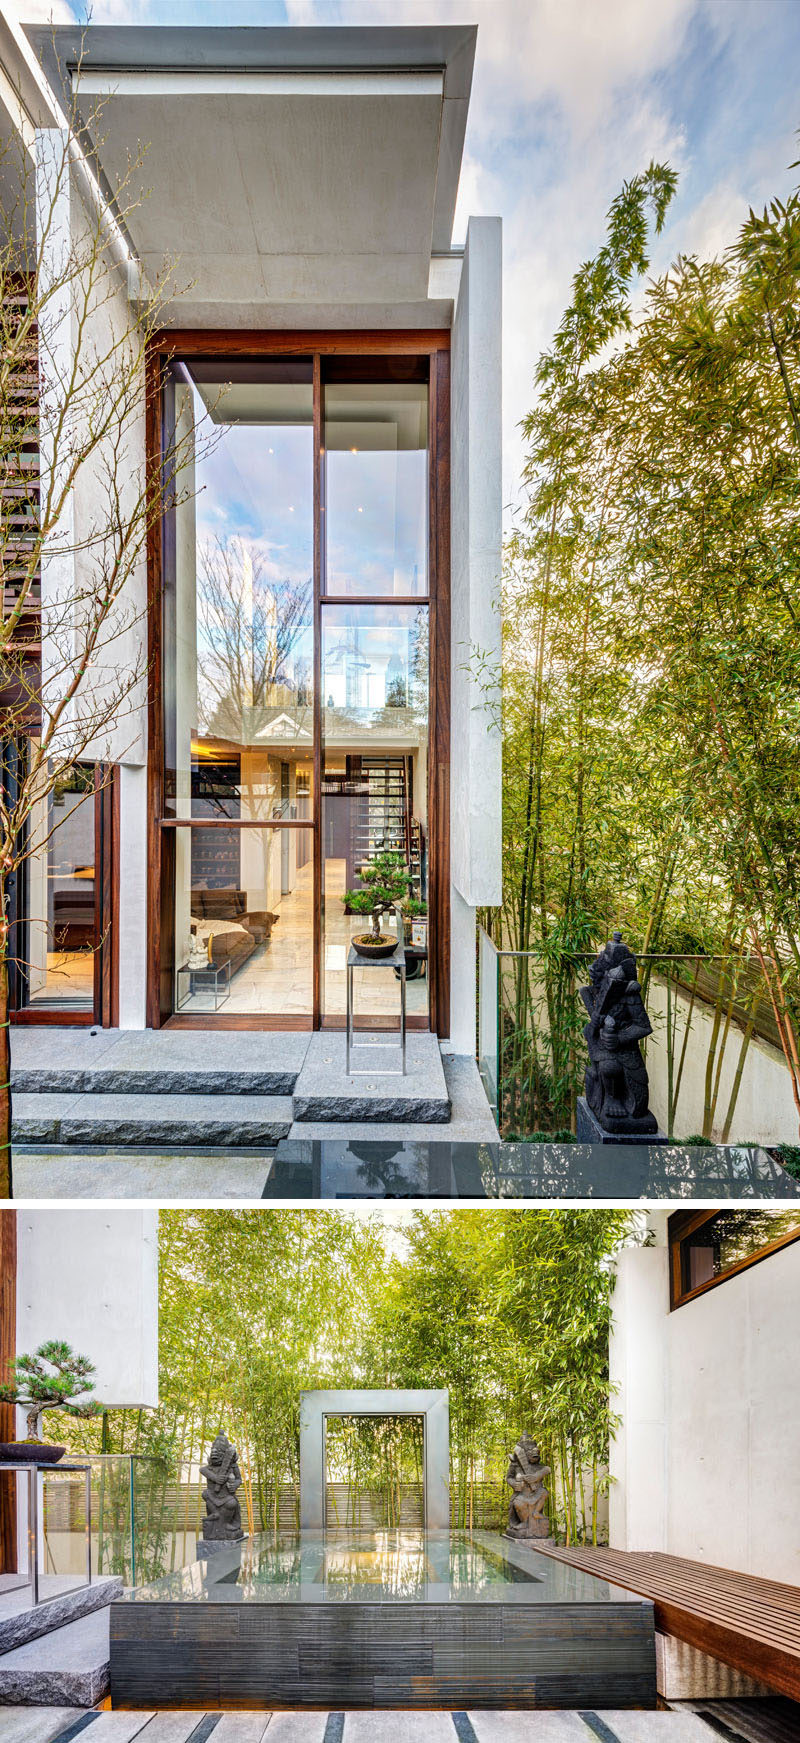 Just off the kitchen in this modern home is a quiet and peaceful oasis where influences from Bali and Thailand can be seen with a water feature, statues and bamboo.